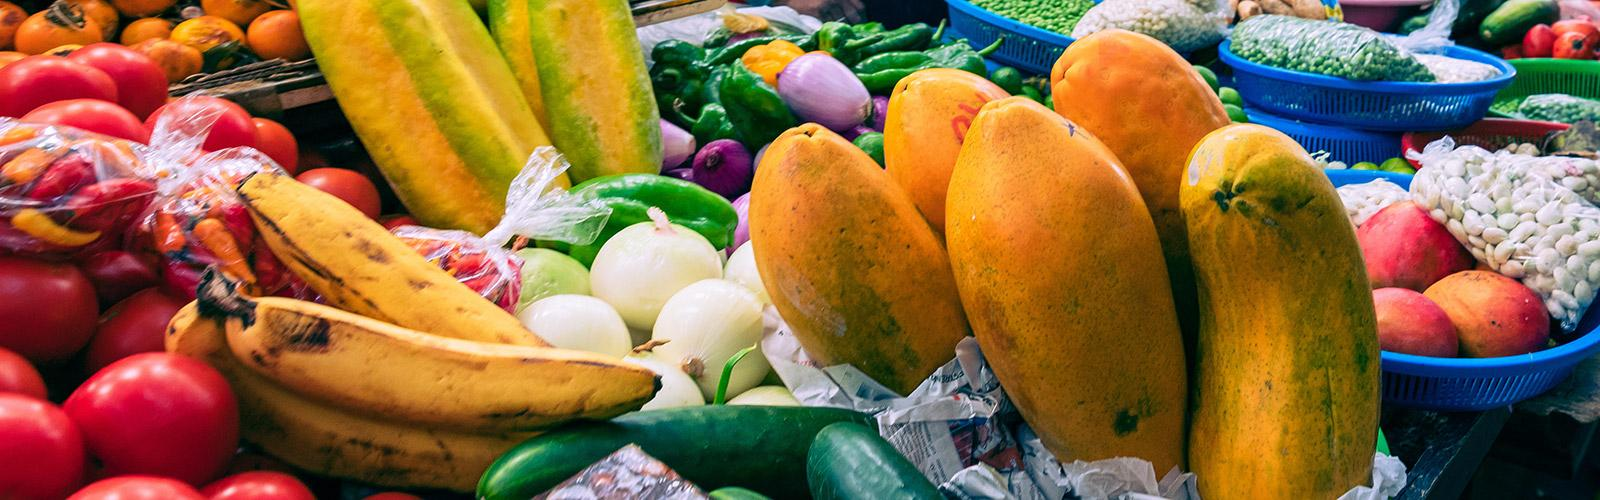 Traditional food market selling agricultural products and other food items in Cuenca, Ecuador, South America © Curioso, Adobe Stock